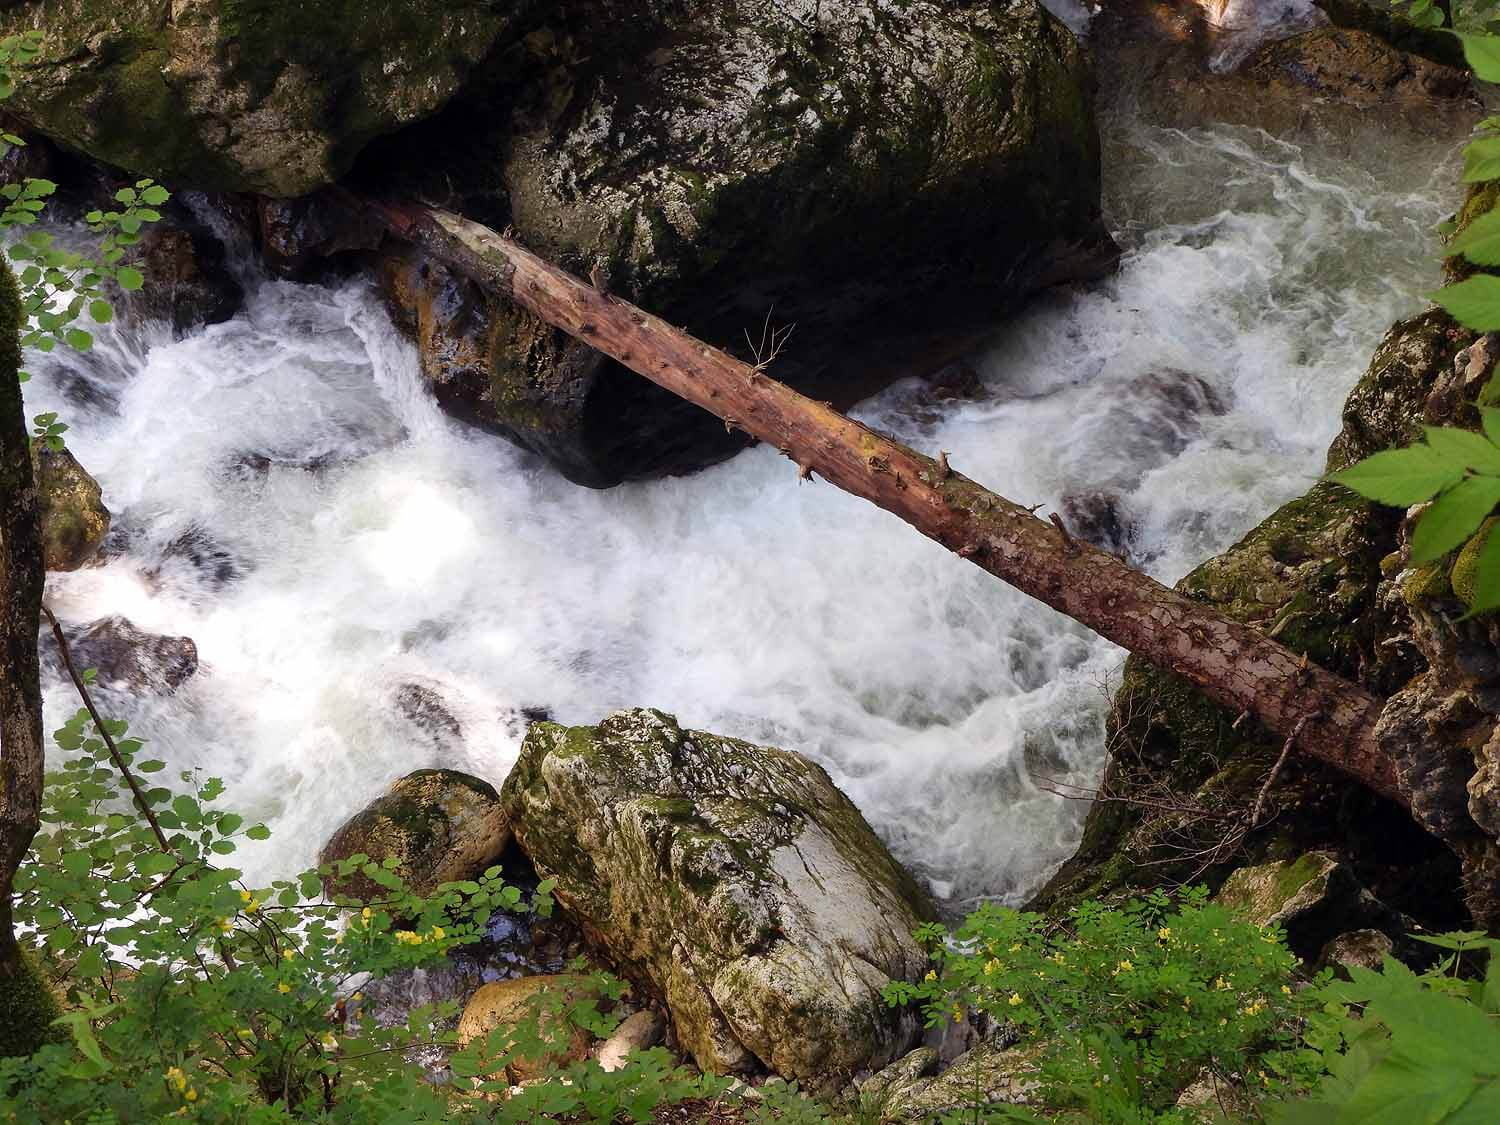 switzerland-saut-pont-brot-hike-walk-hiking-river-waterfall.JPG